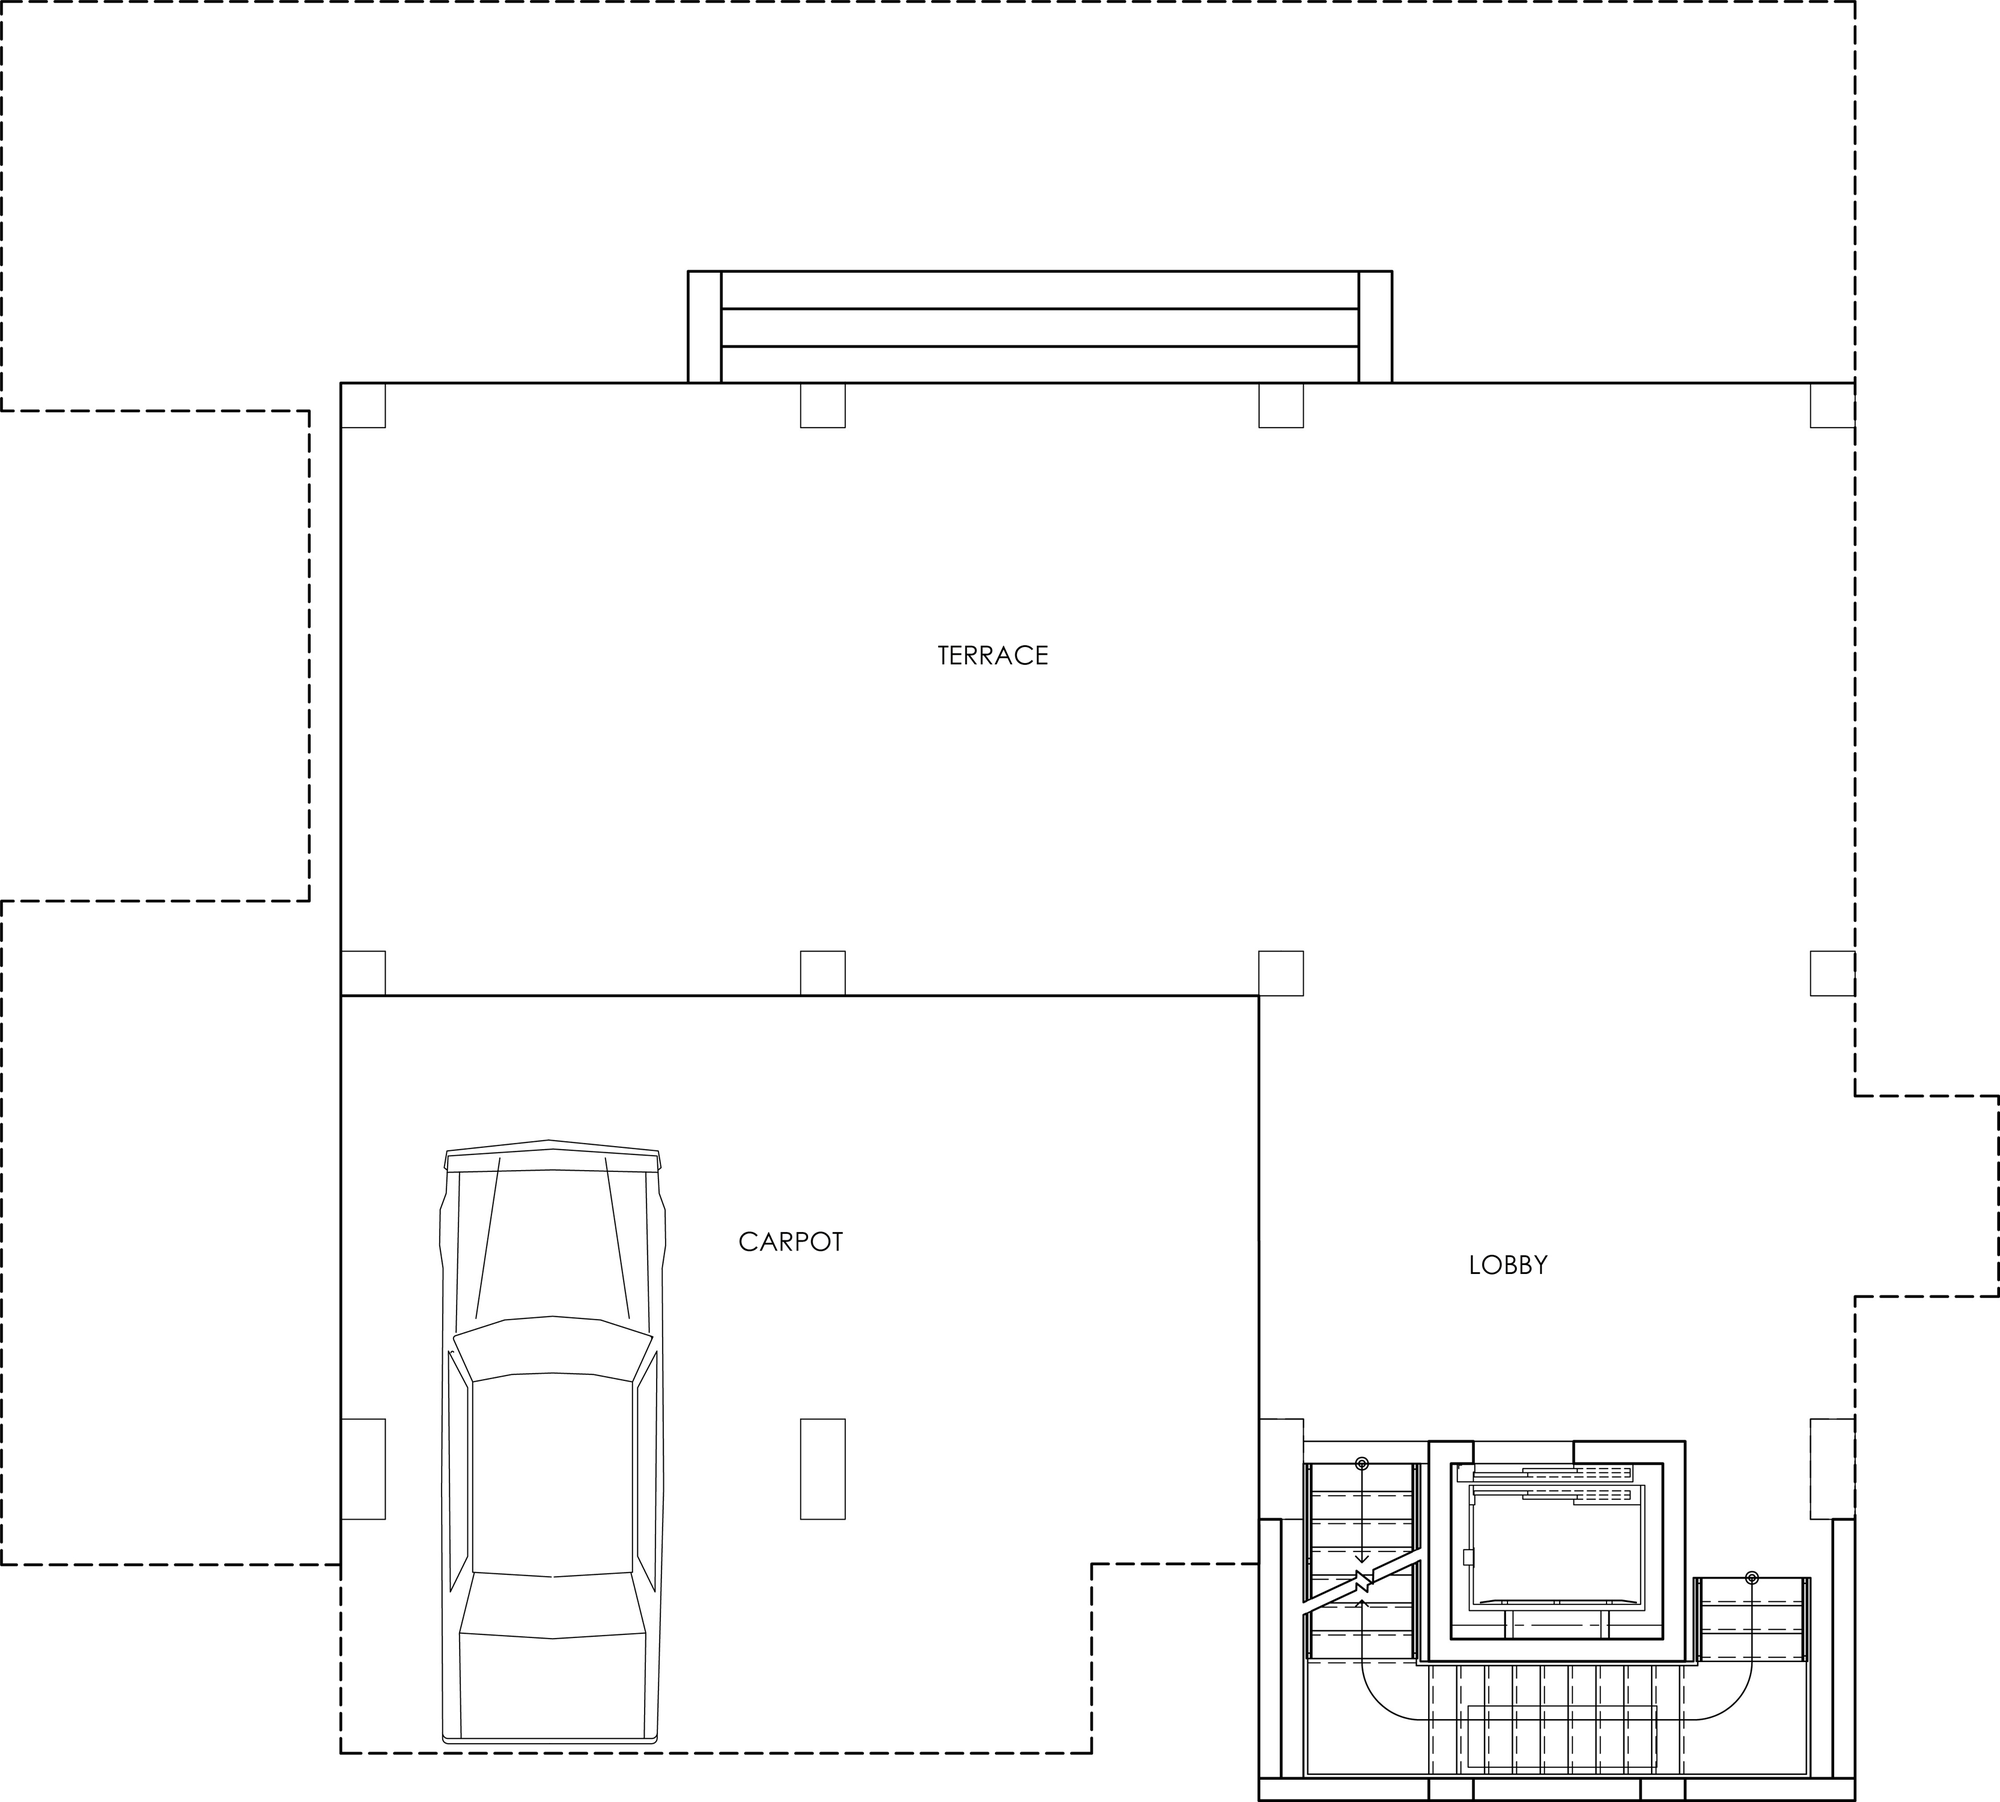 residencia-tavernier-drive-luis-pons-design-lab_101-house_renovation_-_tavernier_key_fl-_first_floor_plan